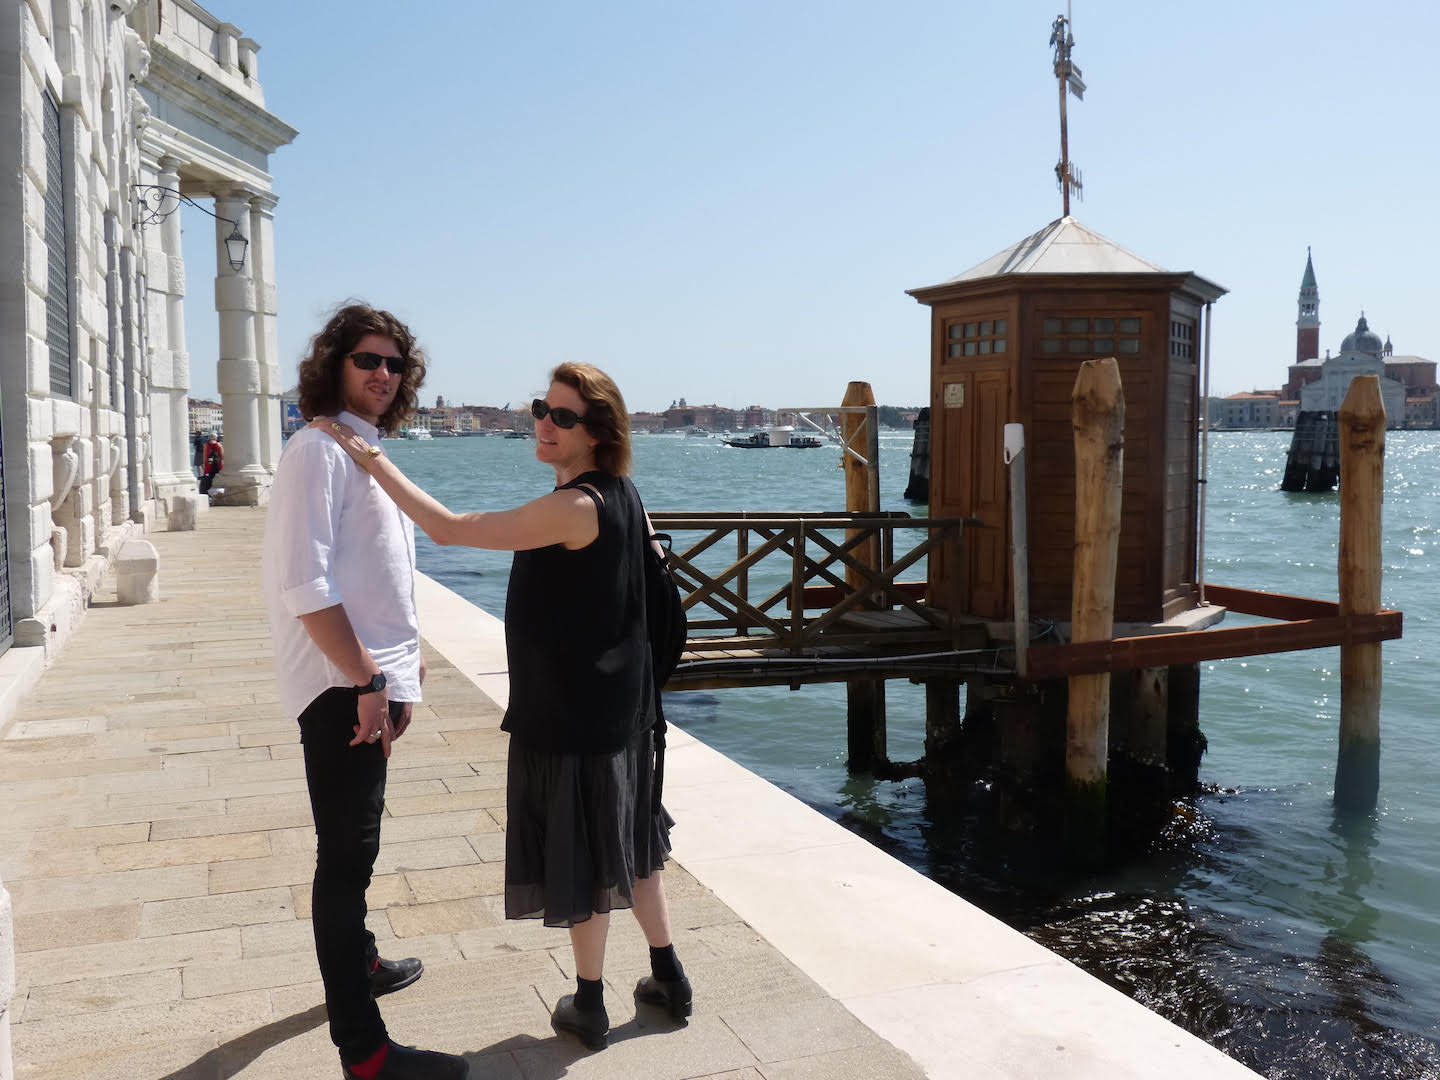 Andrea and Dax at the Venice Biennale in 2016.